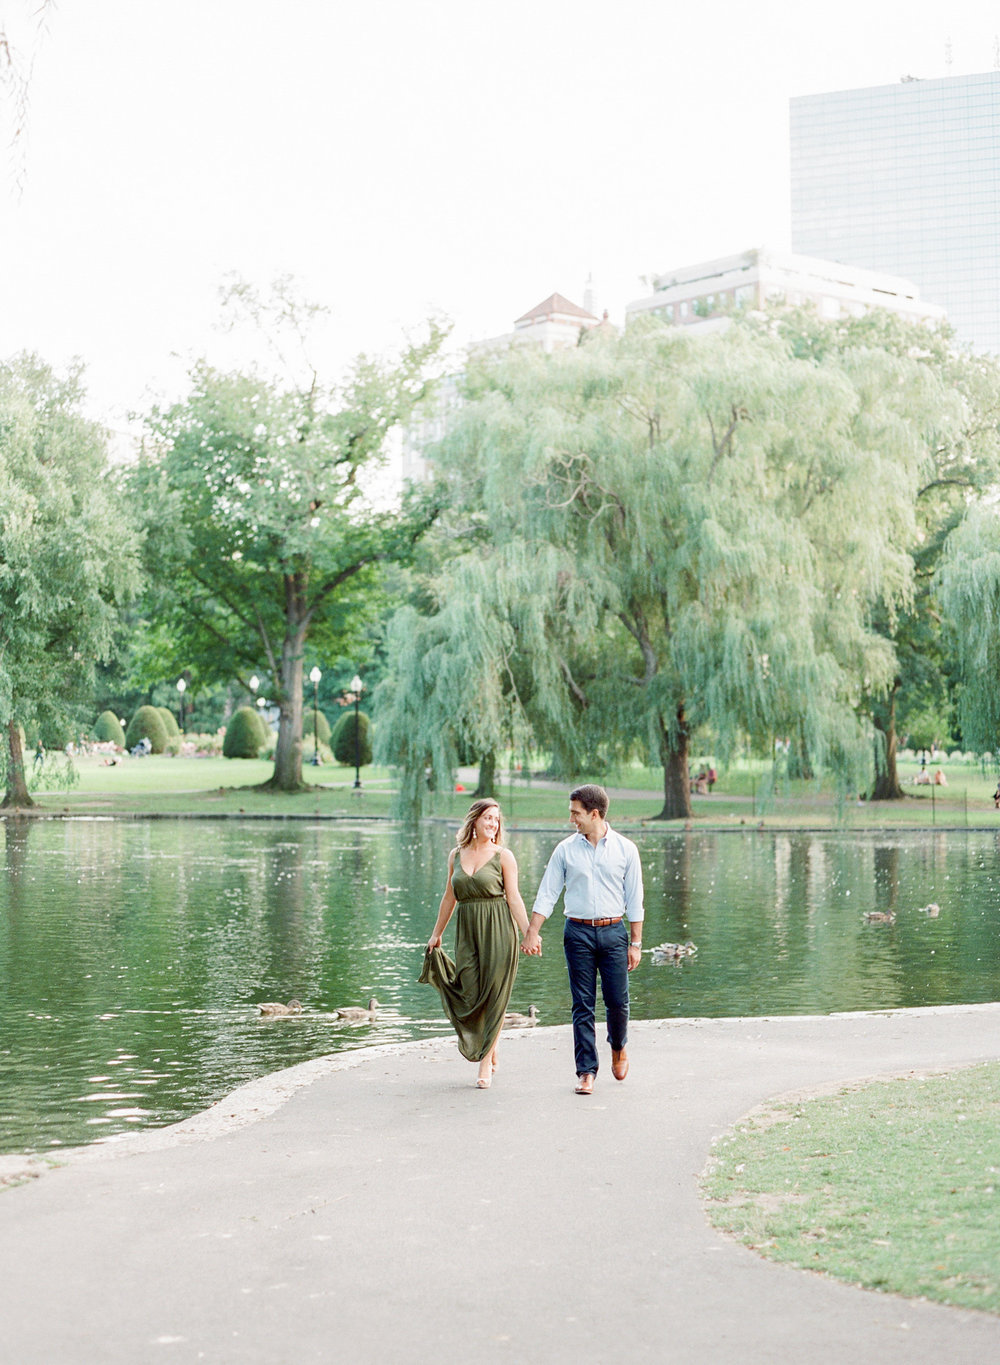 Boston-Engagement-Kristina-Adams-14.jpg